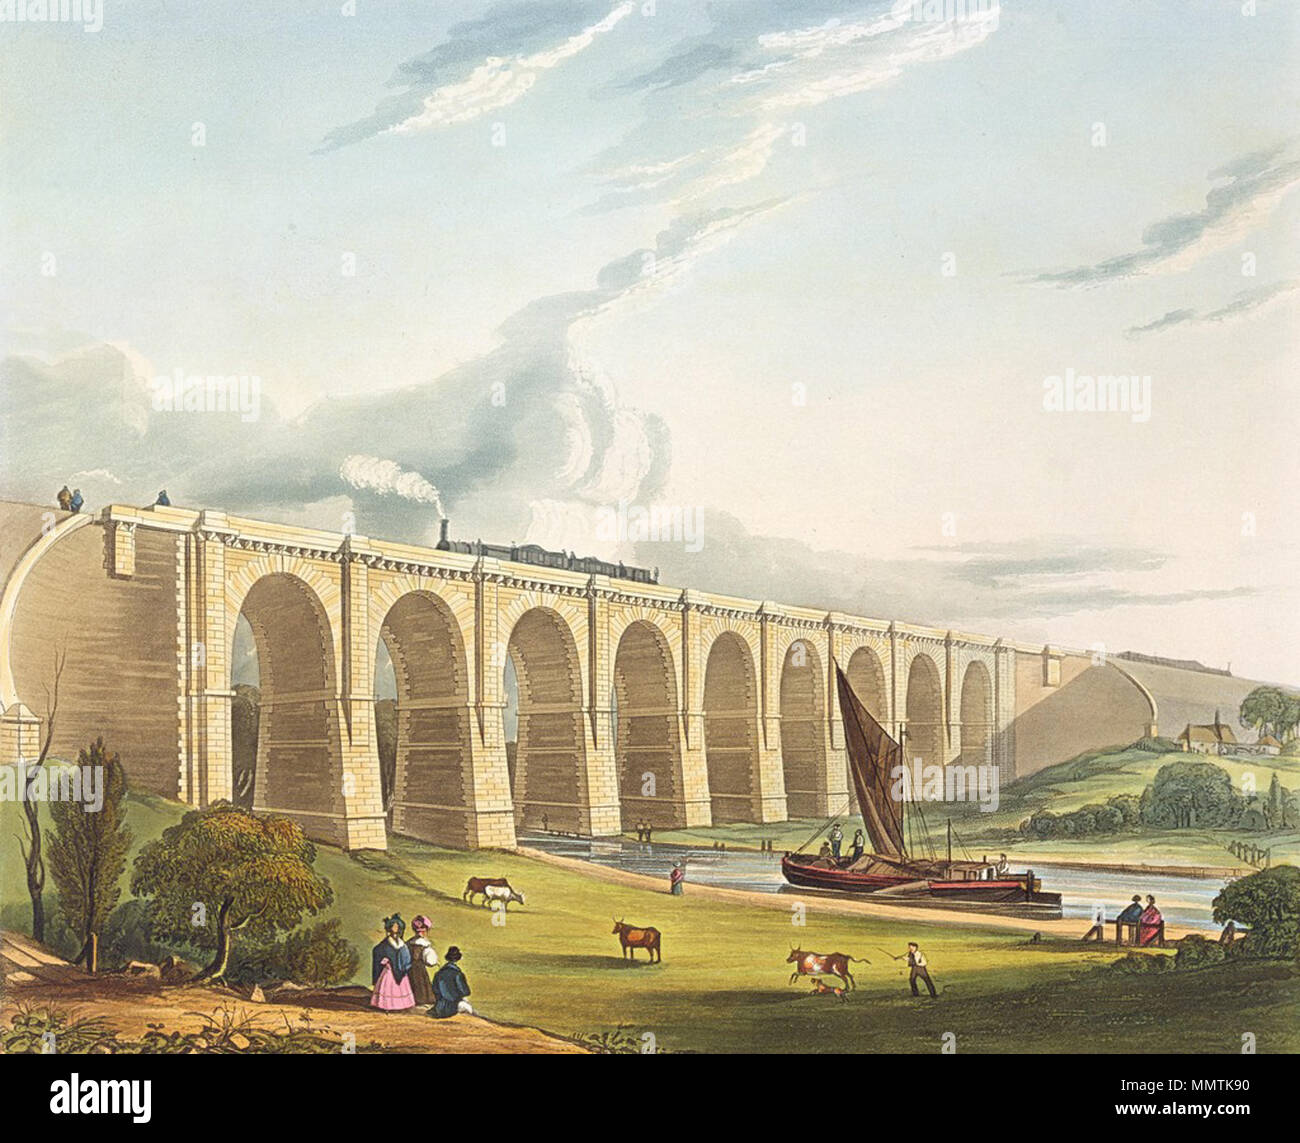 .  English: The Sankey Viaduct where the Liverpool and Manchester Railway crosses the Sankey Canal at a height of 70 ft (21.3 m), allowing sailing craft called Mersey Flats to pass underneath.  Viaduct across the Sankey Valley. 1831. Viaduct across the Sankey Valley, from Bury's Liverpool and Manchester Railway, 1831 - artfinder 122455 Stock Photo